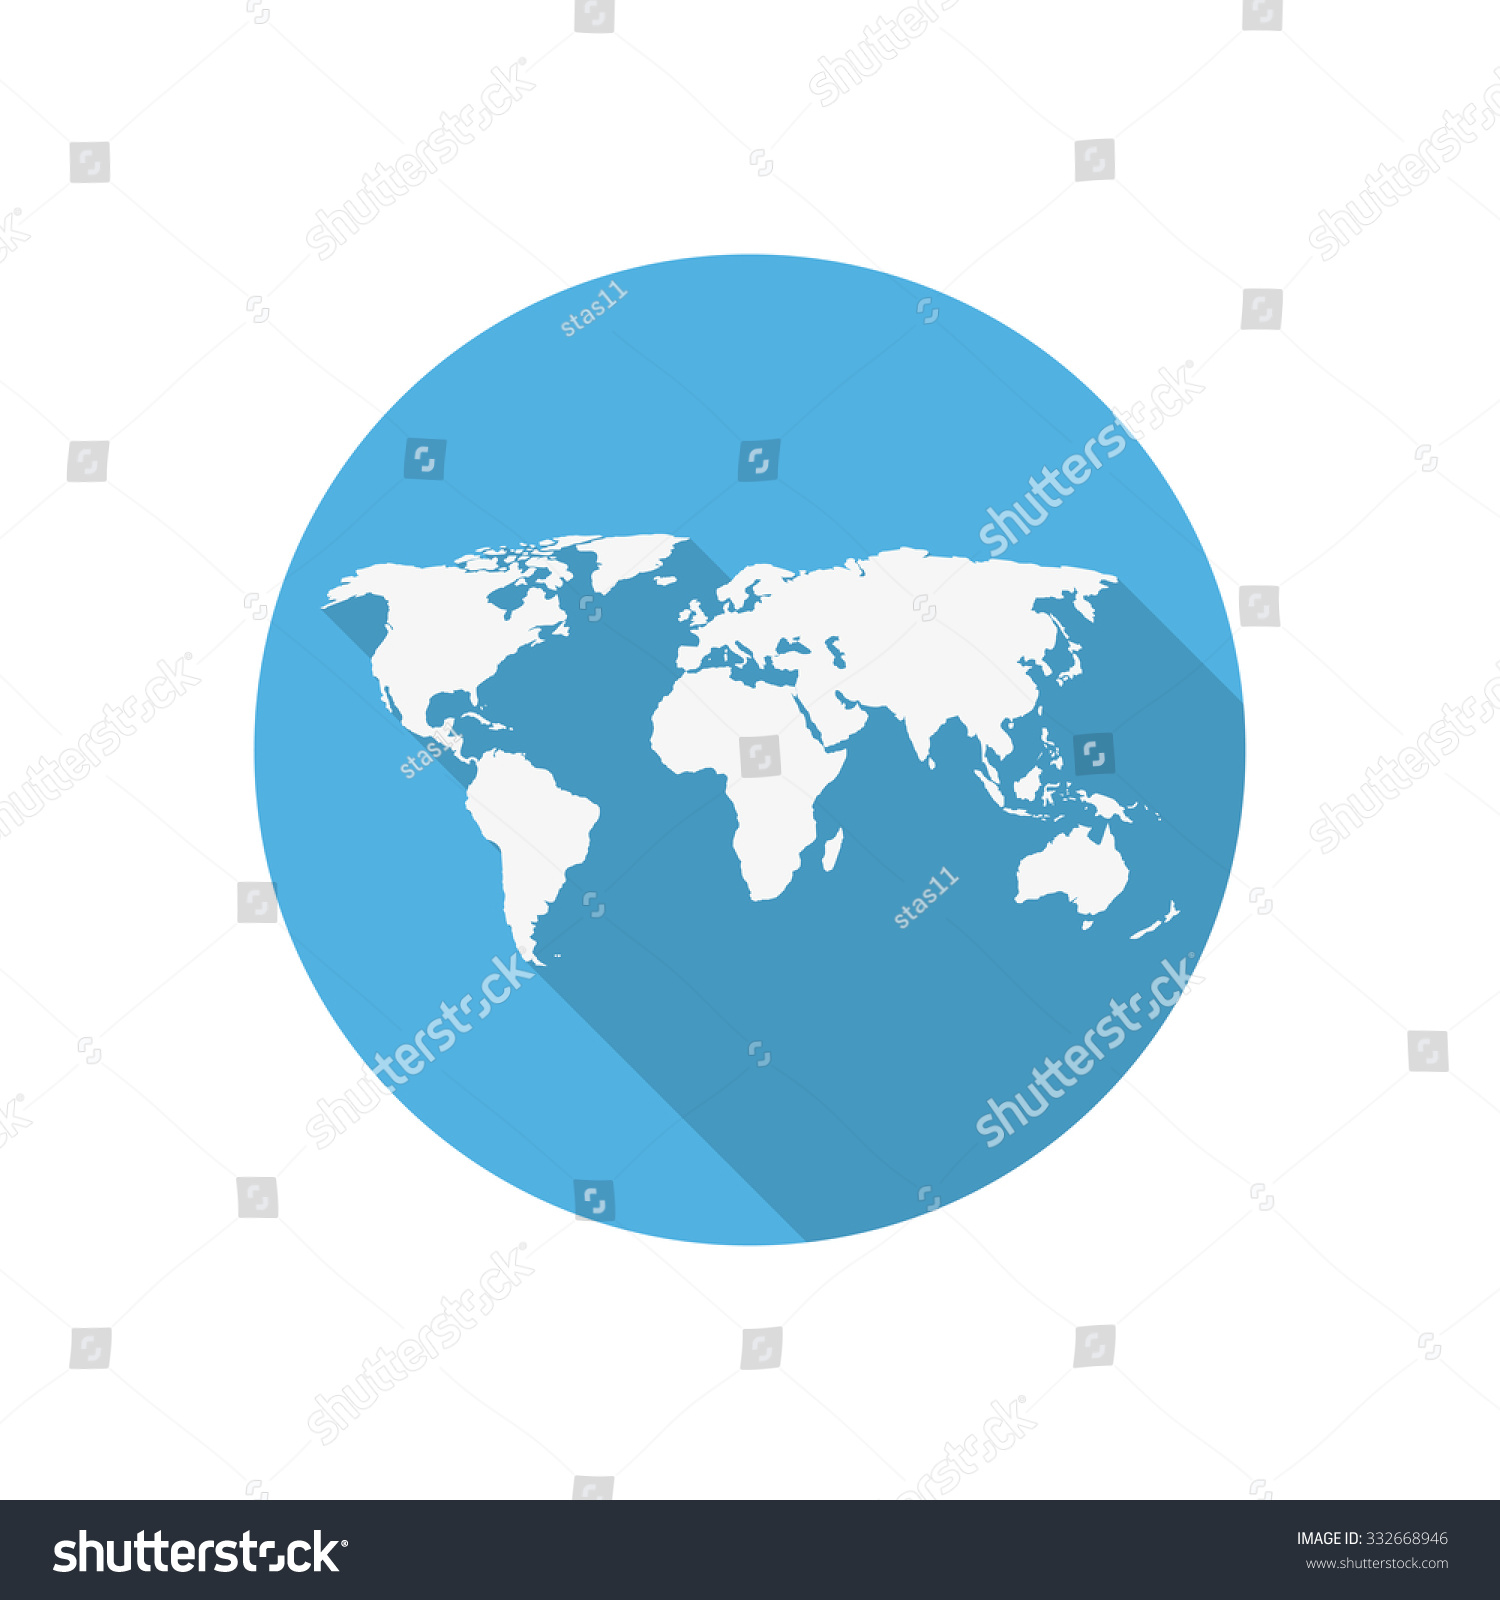 Icon world map on blue circle vectores en stock 332668946 shutterstock icon world map on a blue circle in a flat design gumiabroncs Gallery